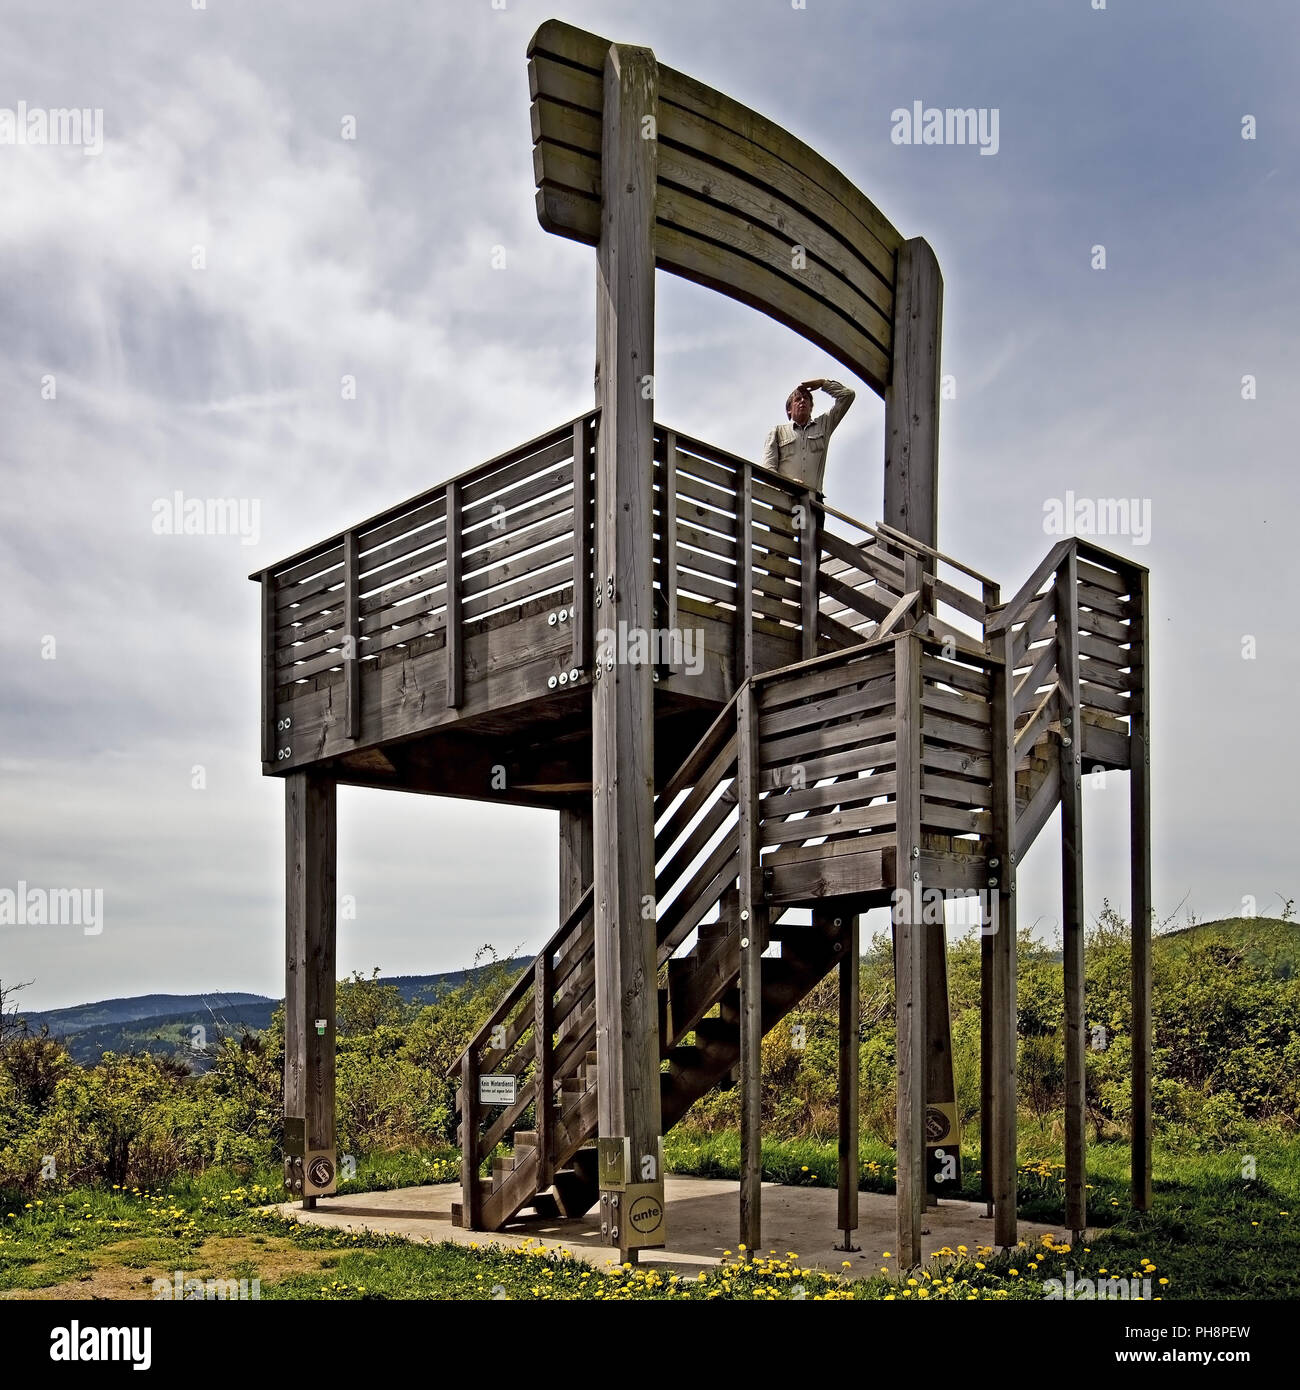 observation tower in form of a chair, Hallenberg - Stock Image